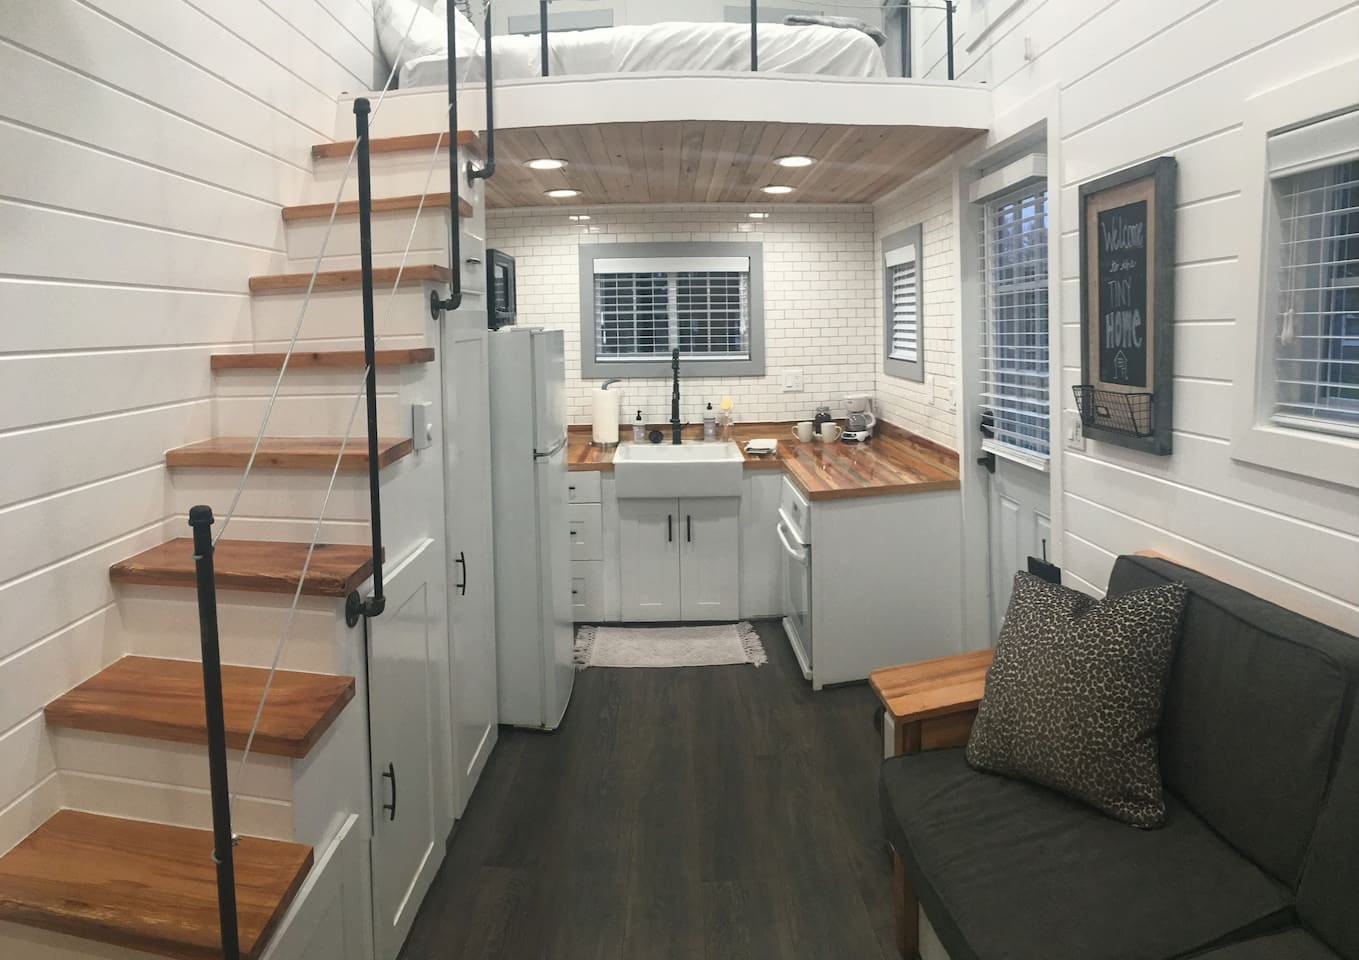 Up the stairs is a Loft with a Full size Mattress (sleeps 2). Under you'll find kitchen stocked with coffee, dishes, and even a full-size oven!